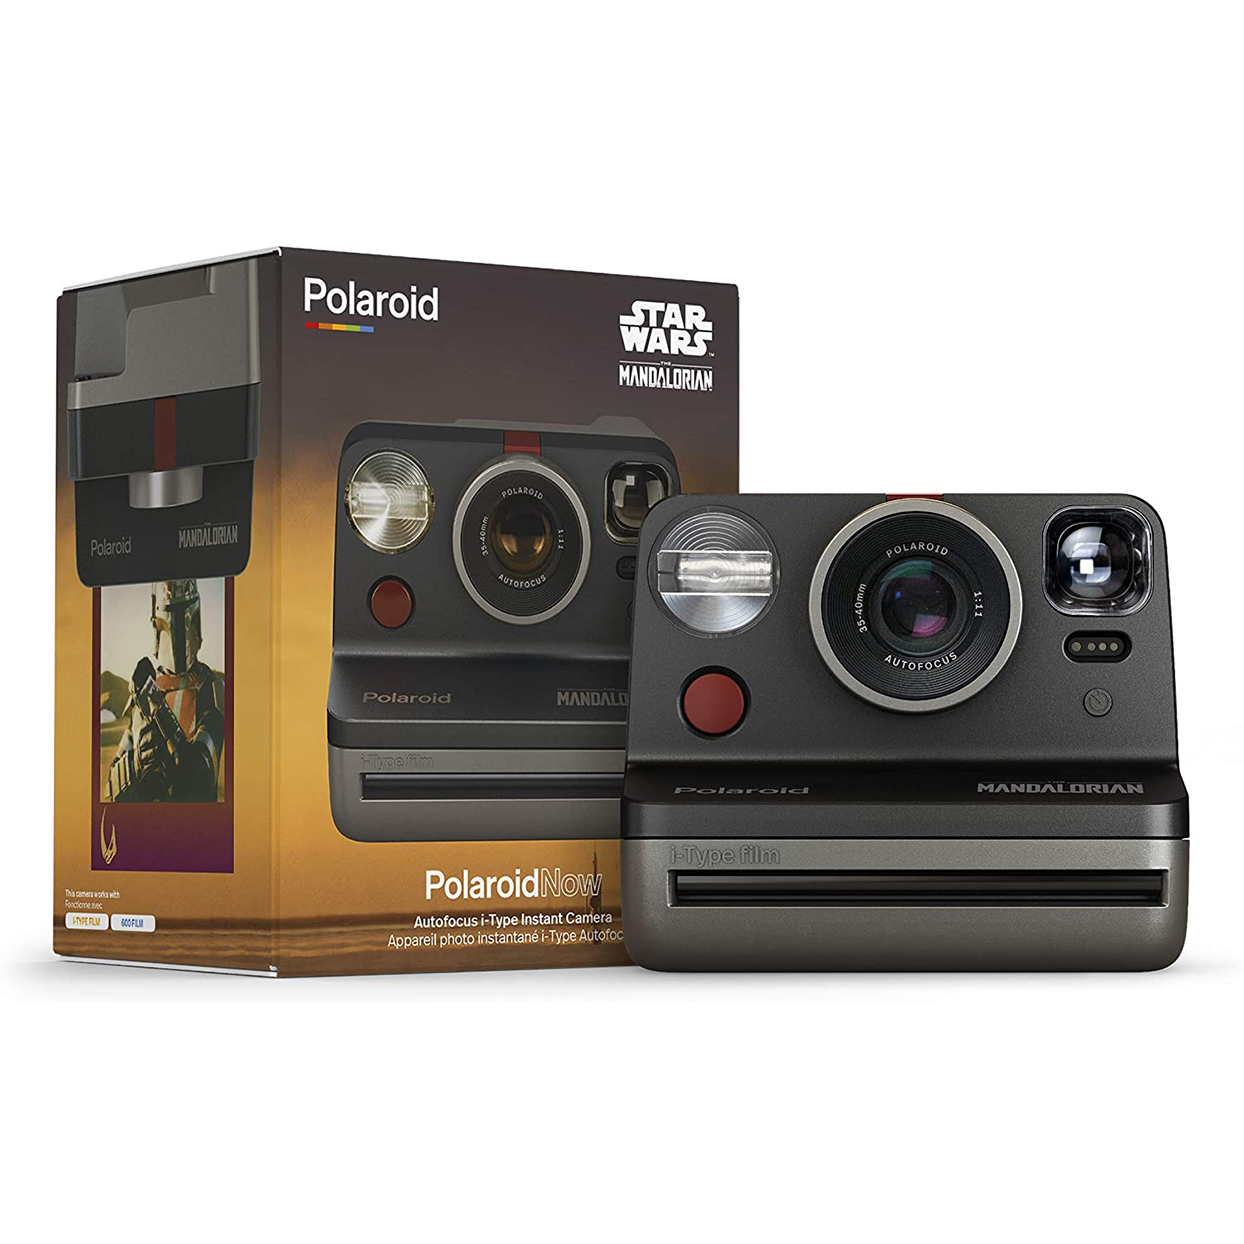 Poloroid Now i-Type Camera - The Mandalorian Edition